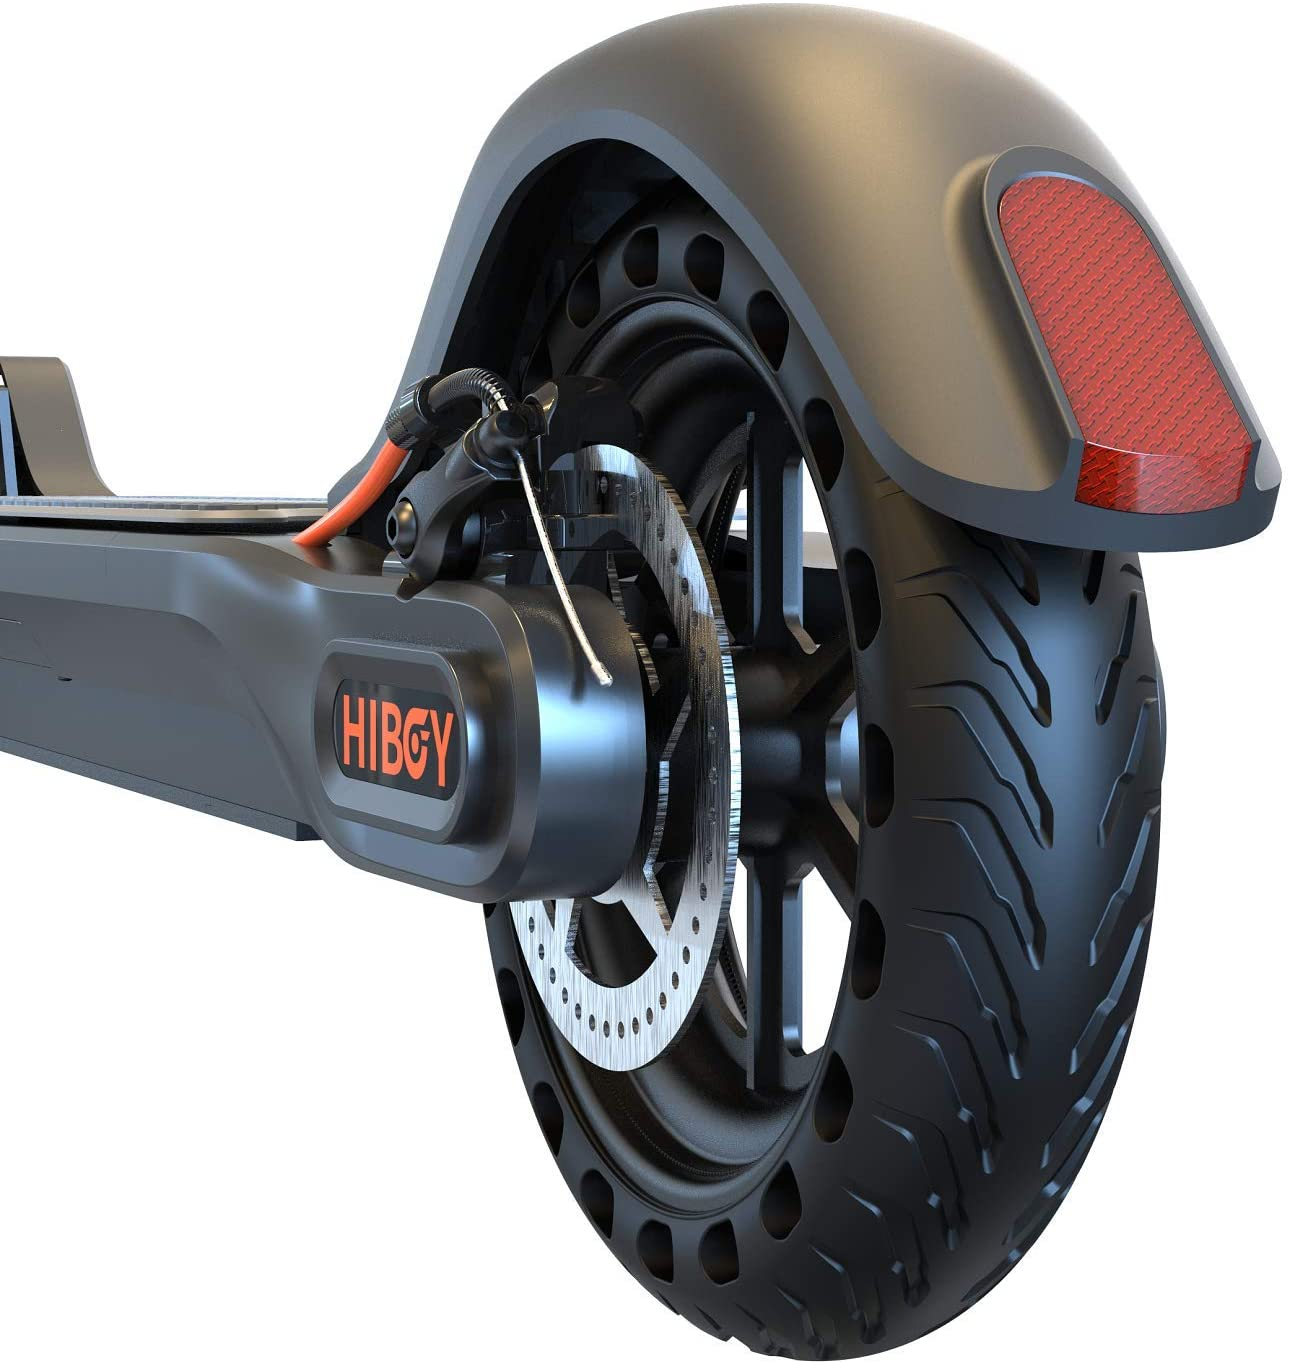 Hiboy Mudguard Rear Fender with Tail Light MAX Electric Scooter